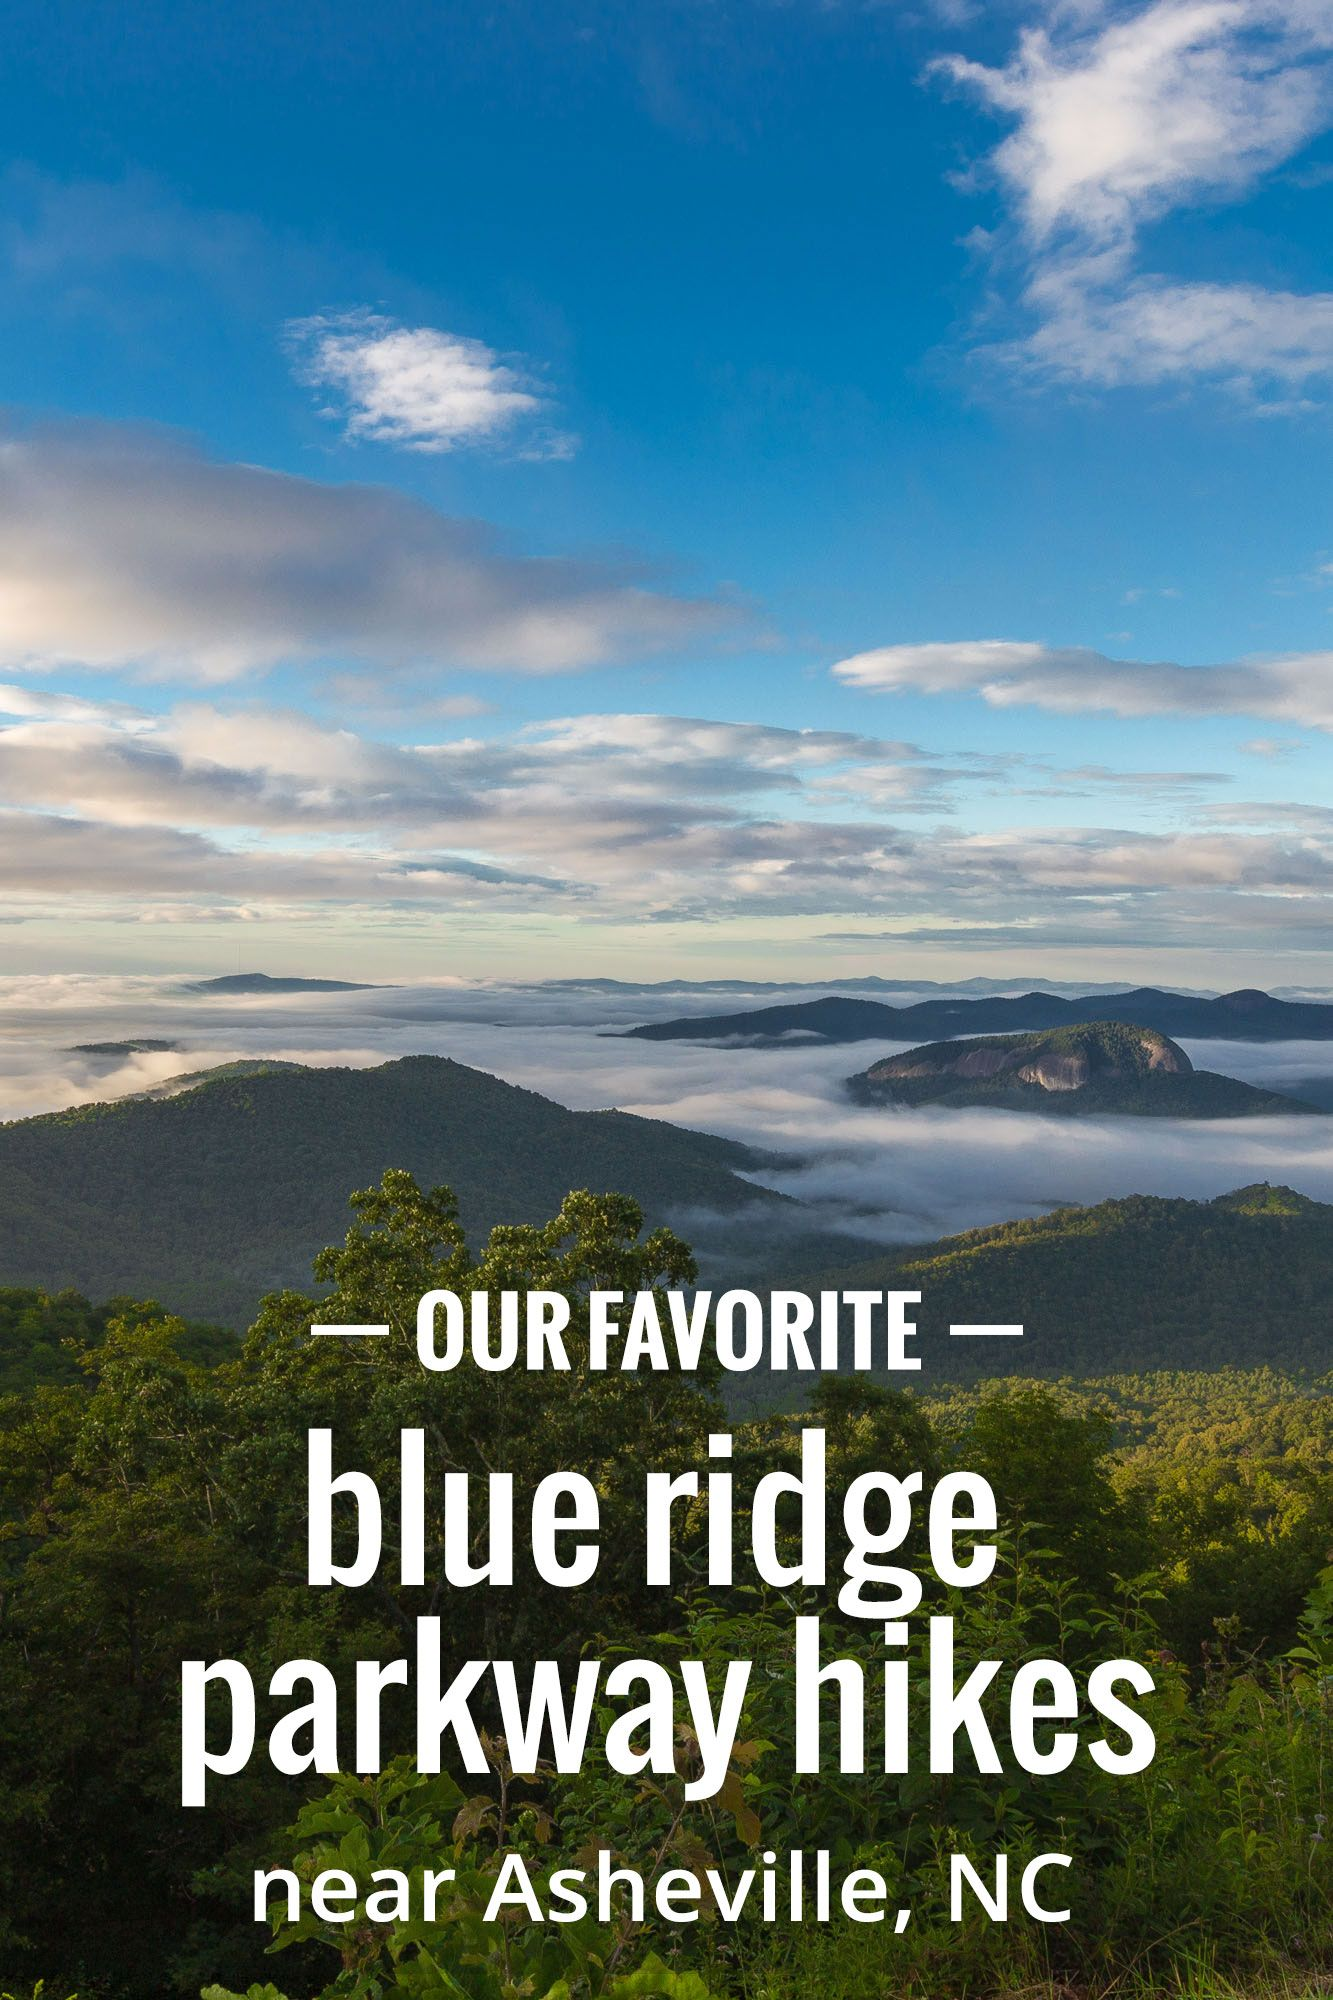 Blue Ridge Parkway: our favorite hikes near Asheville, NC